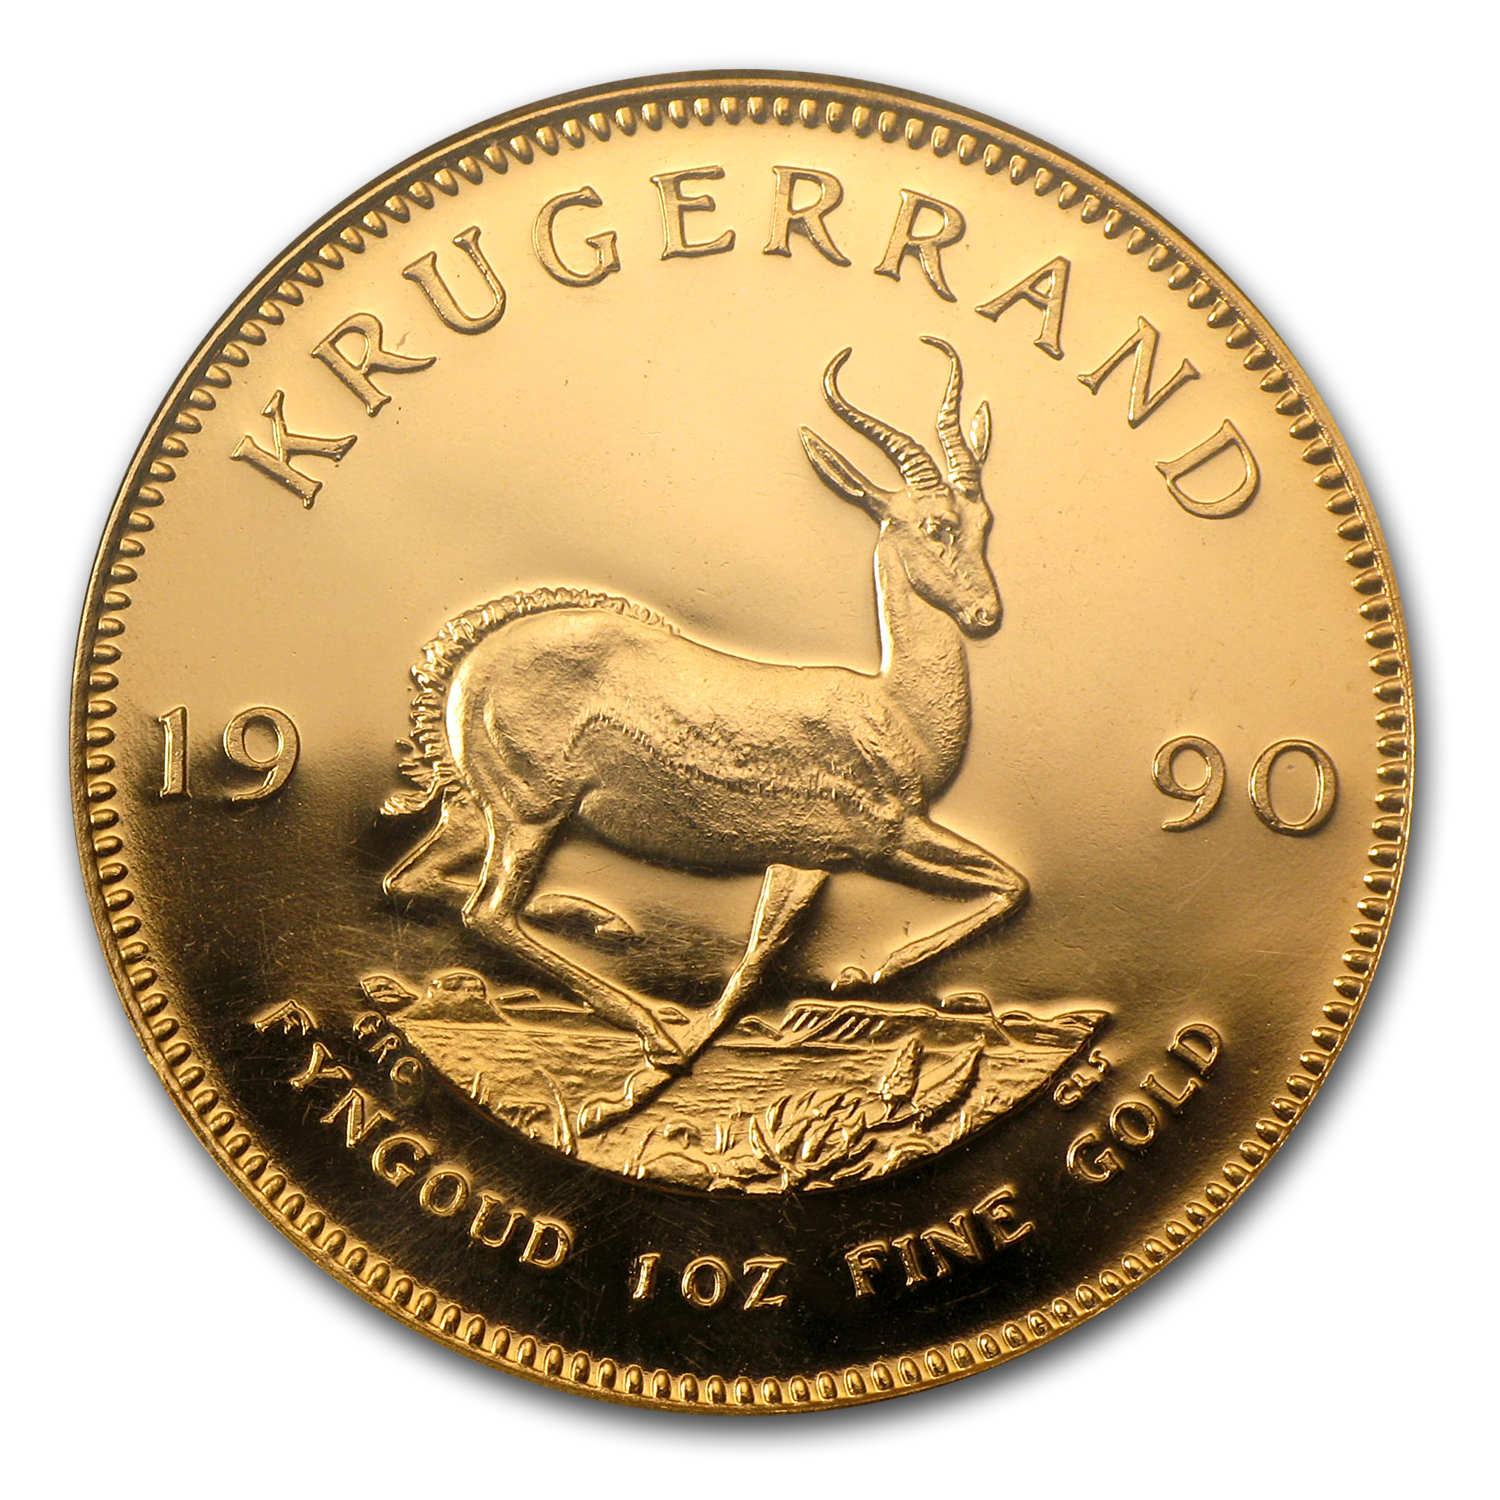 1990 1 oz Gold South African Krugerrand Proof